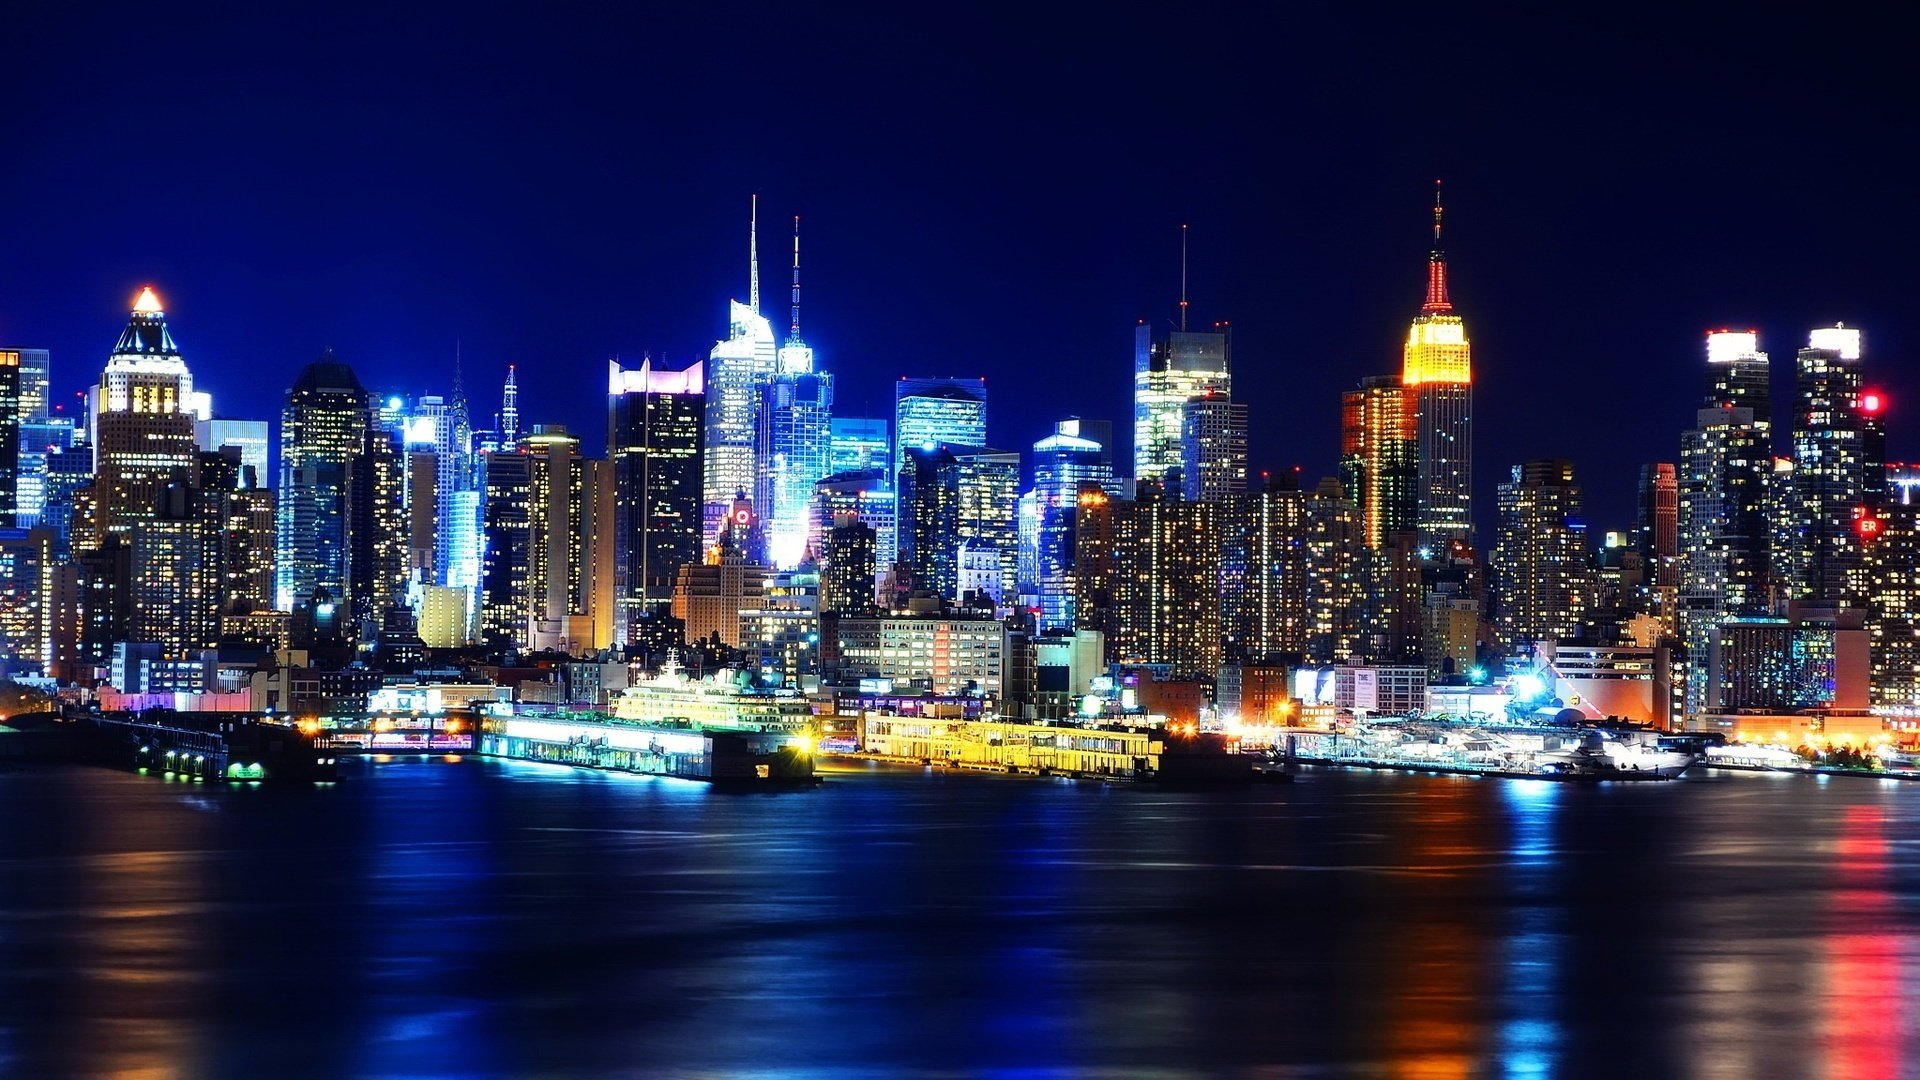 Sharing New York City Night Lights HD Wallpapers Wallpaper 1920x1080